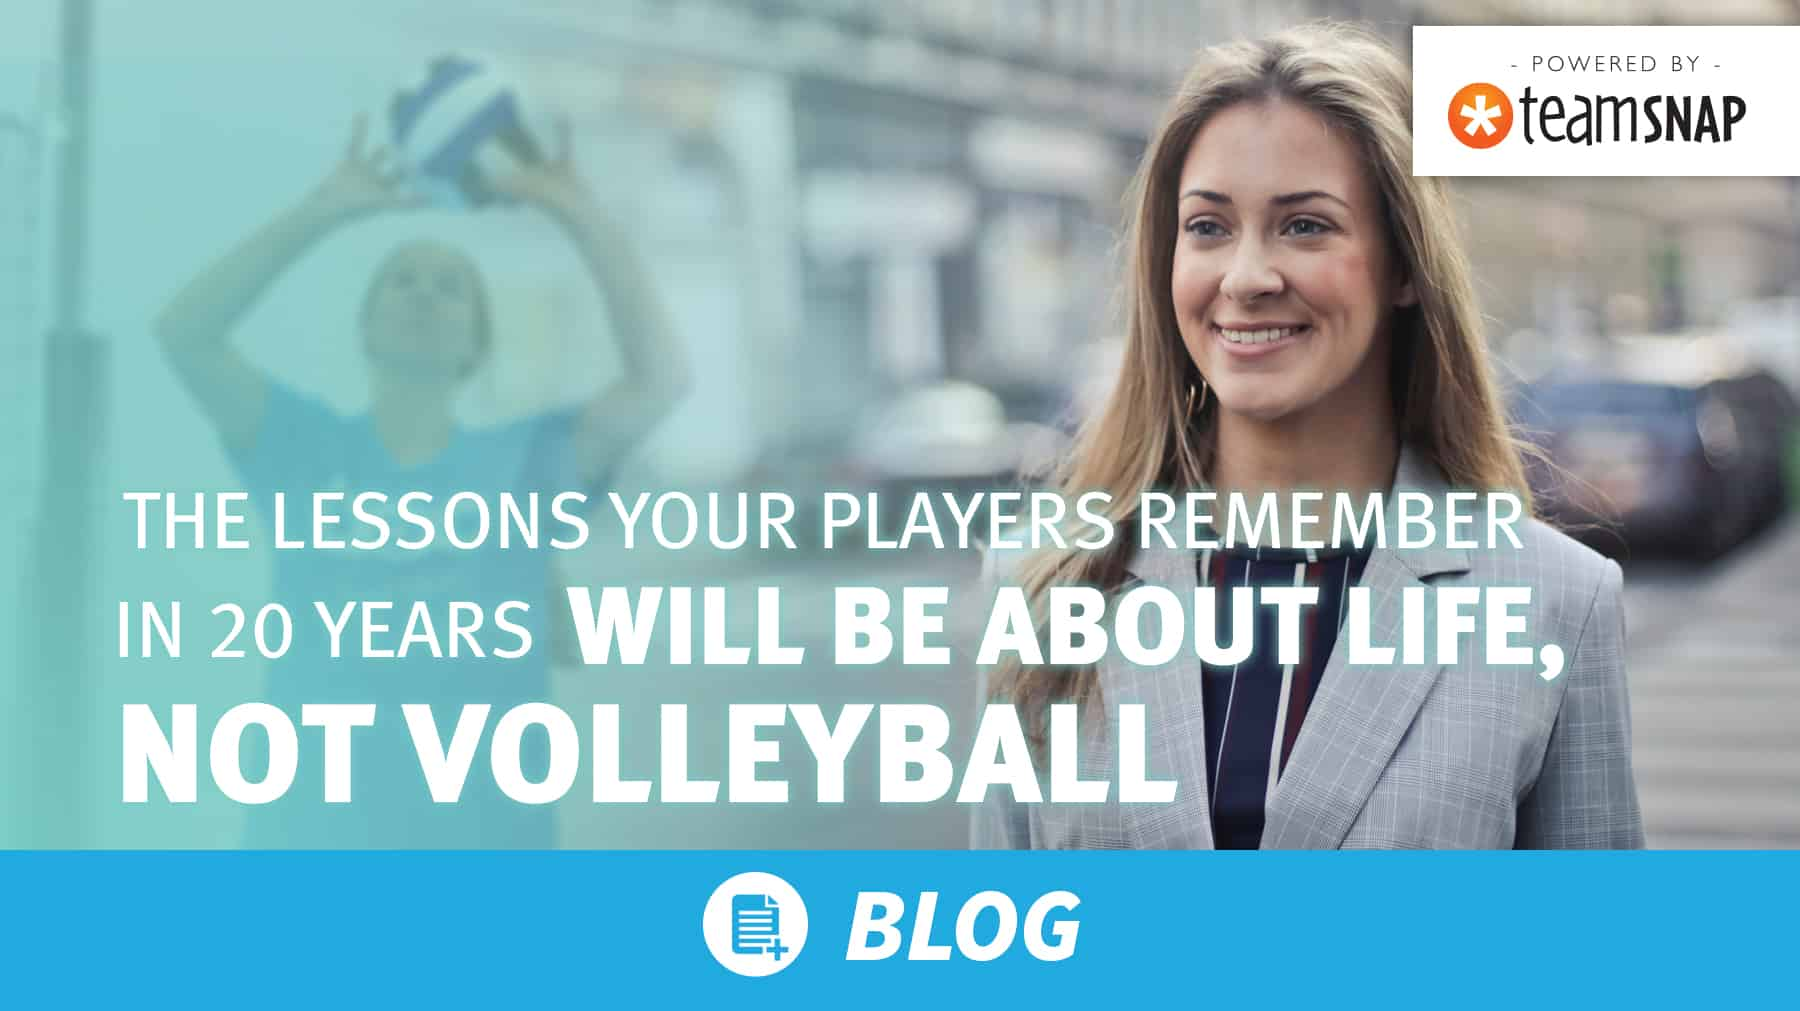 The lessons your players remember in 20 years will be about life, not volleyball